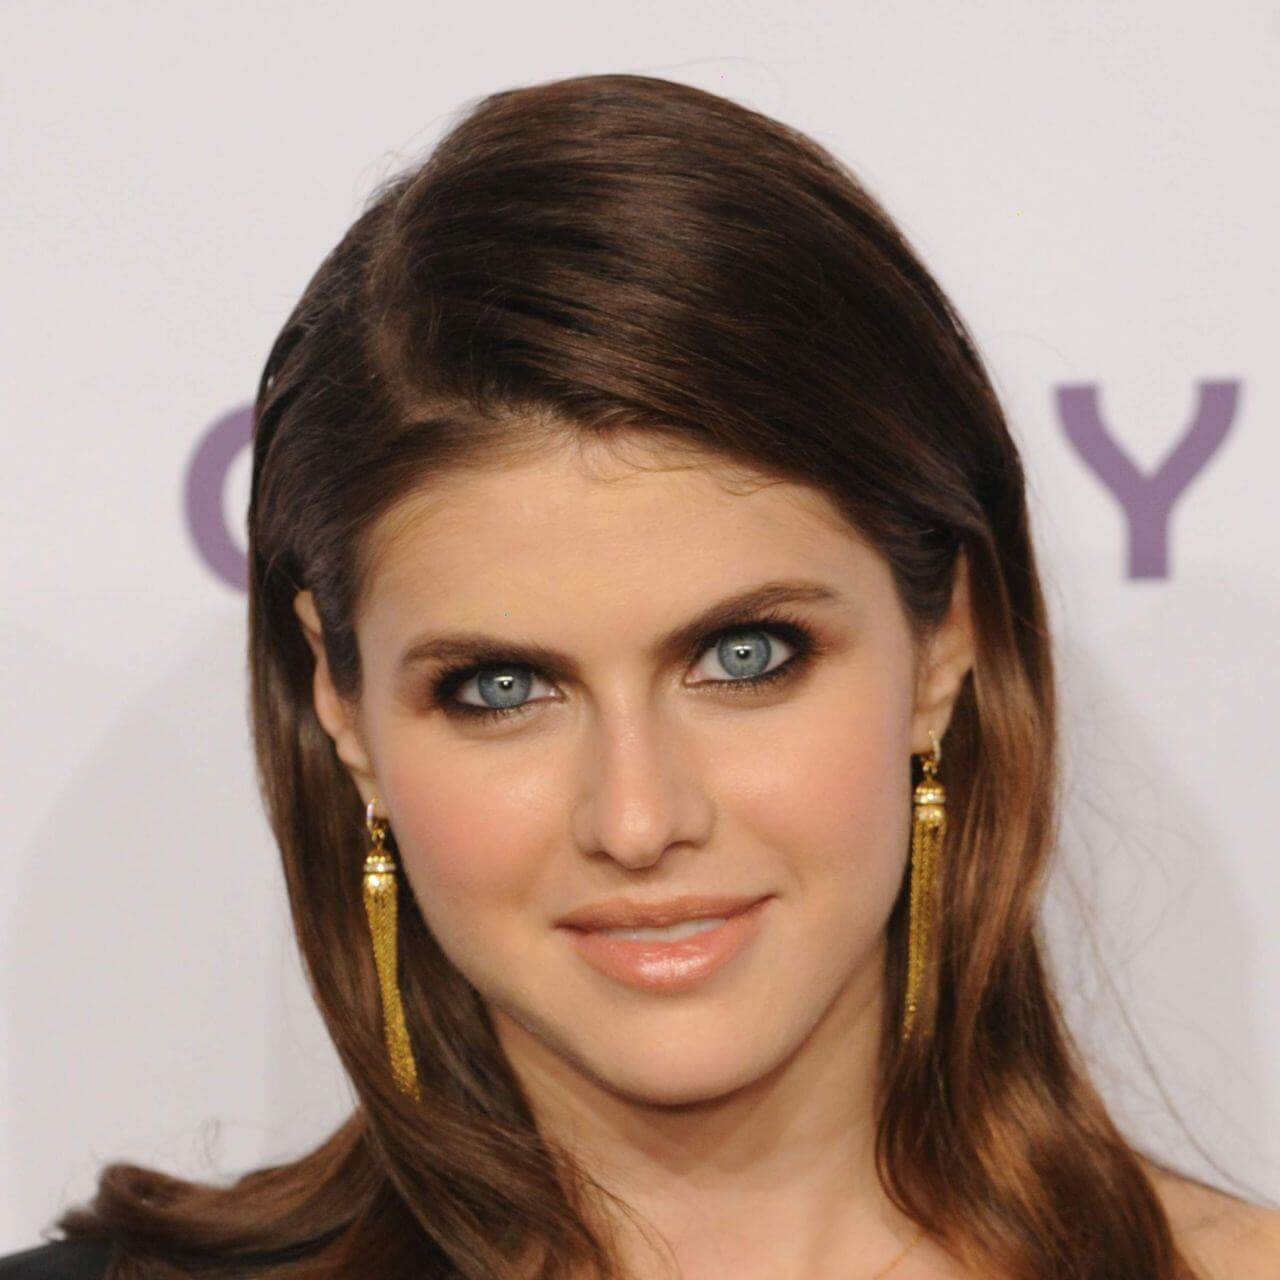 Alexandra Daddario Biography Actress Profile